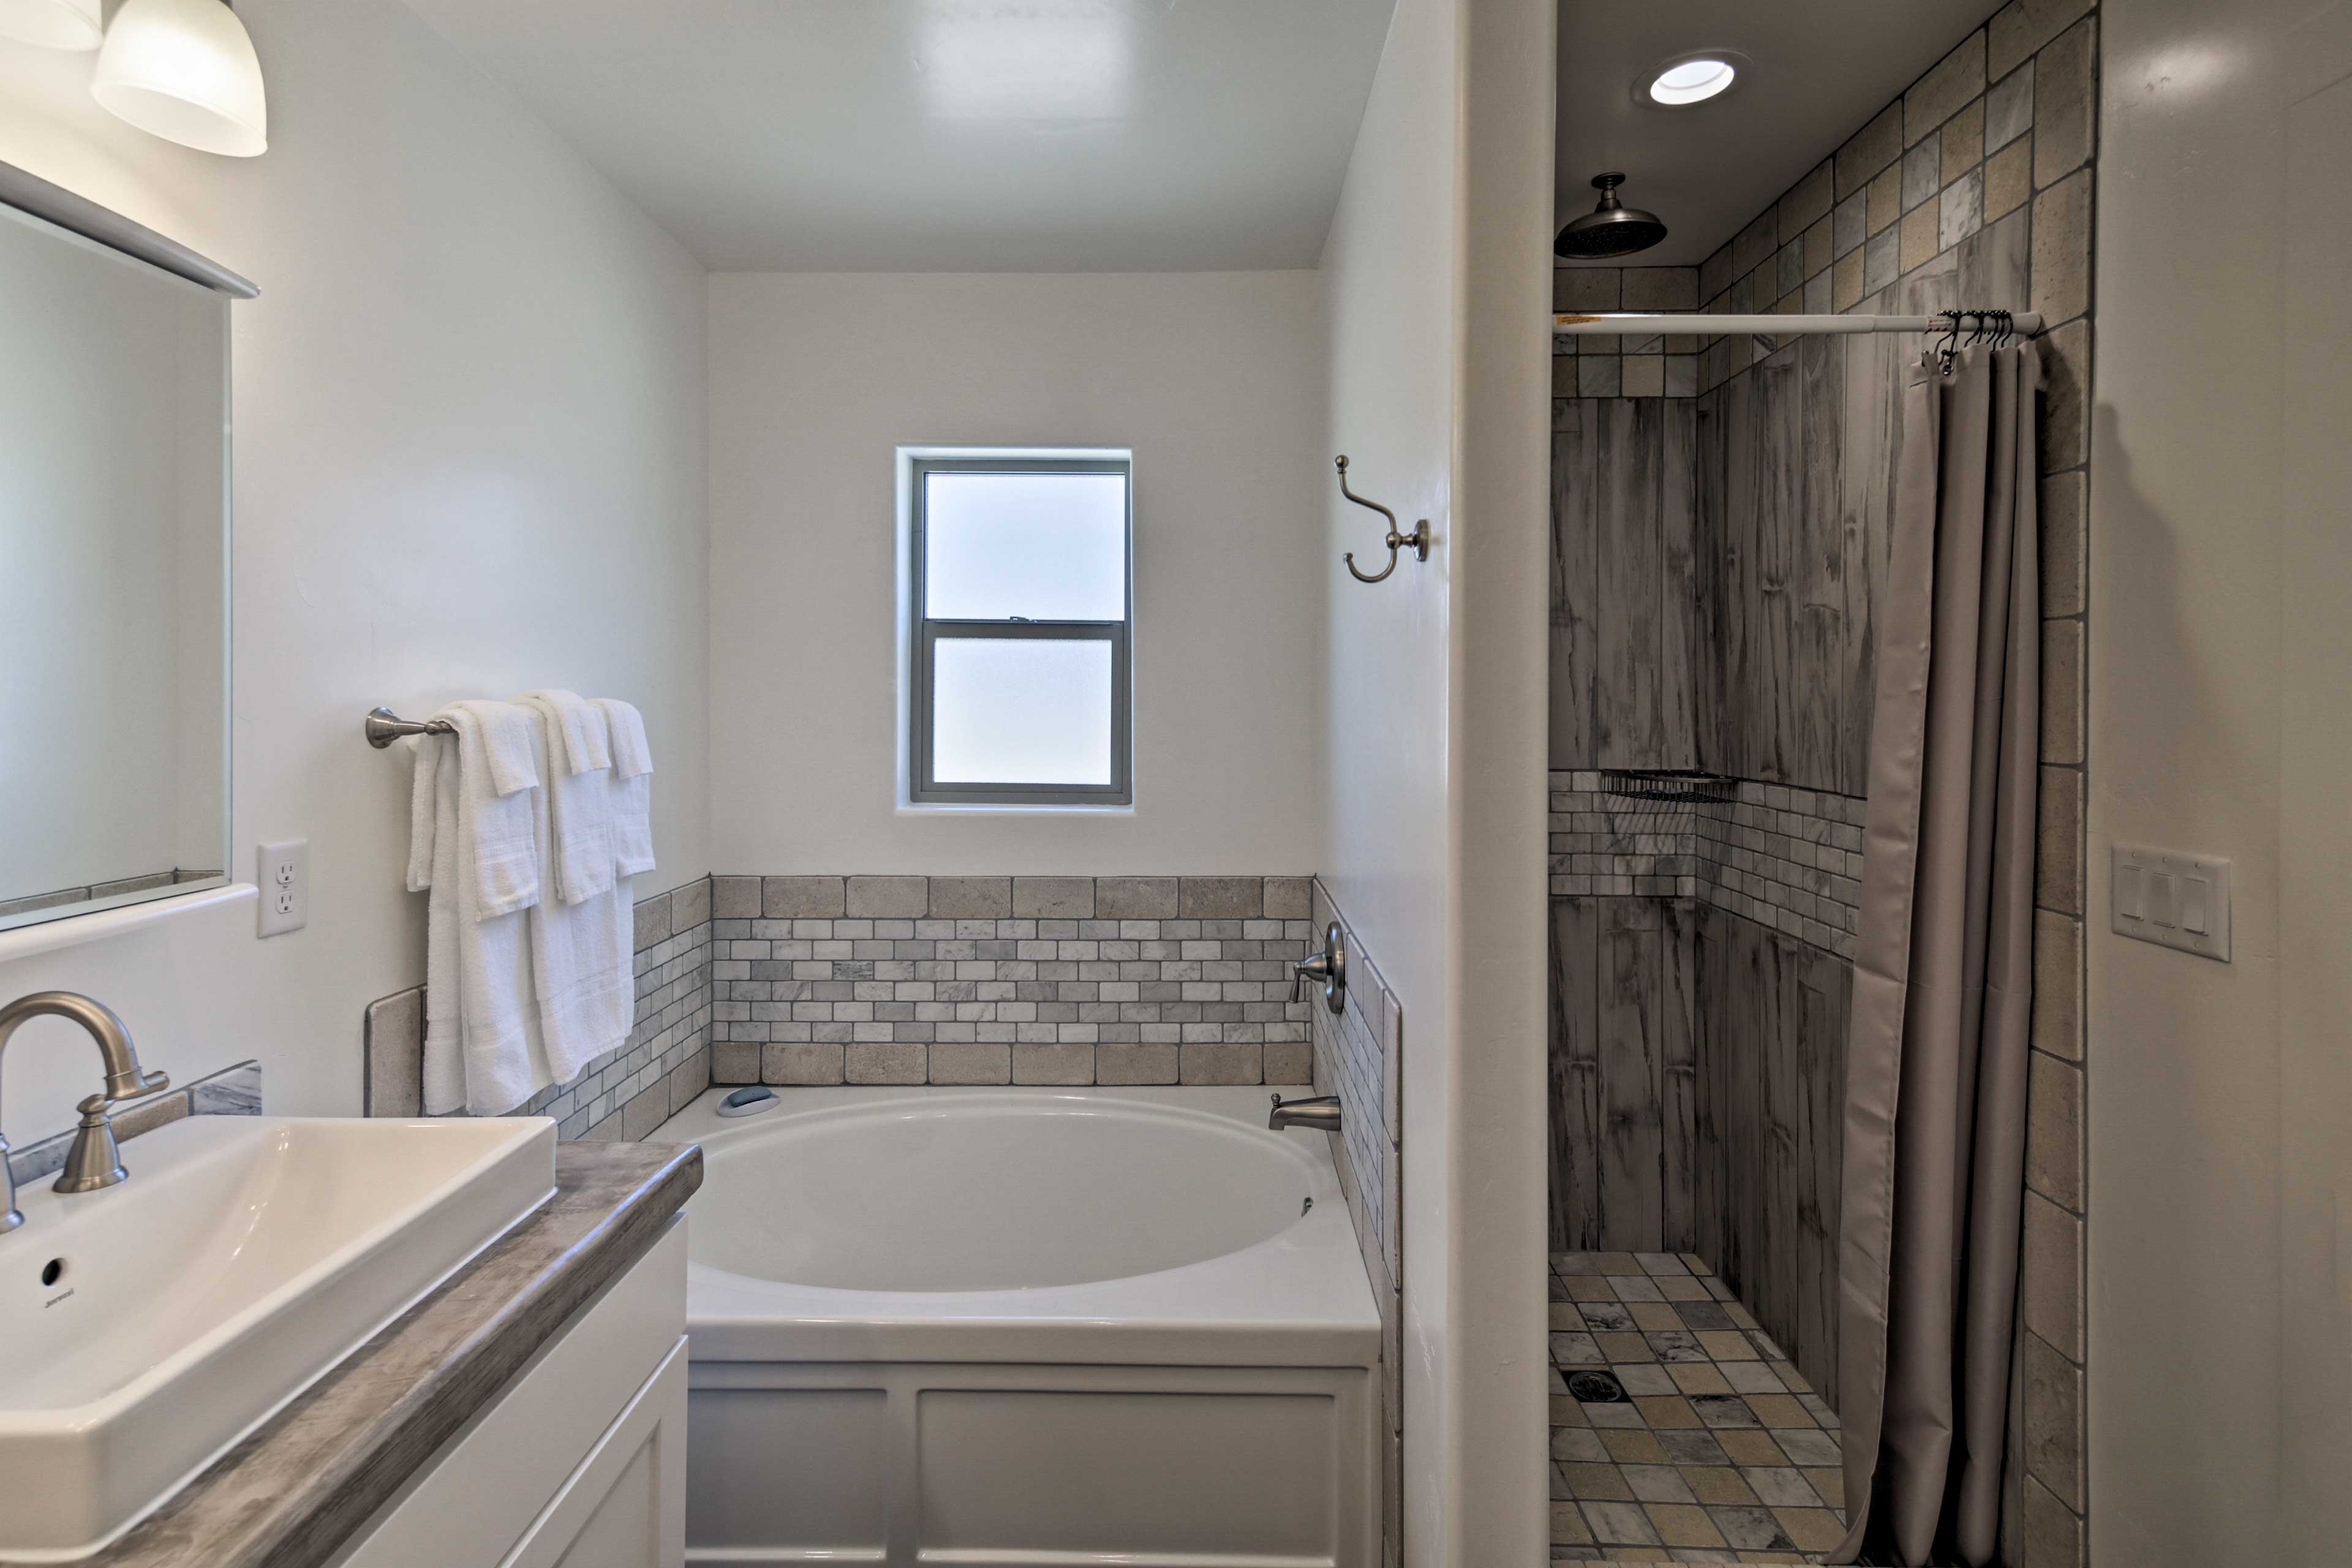 Savor a moment of relaxation in the second bathroom's lavish garden tub.